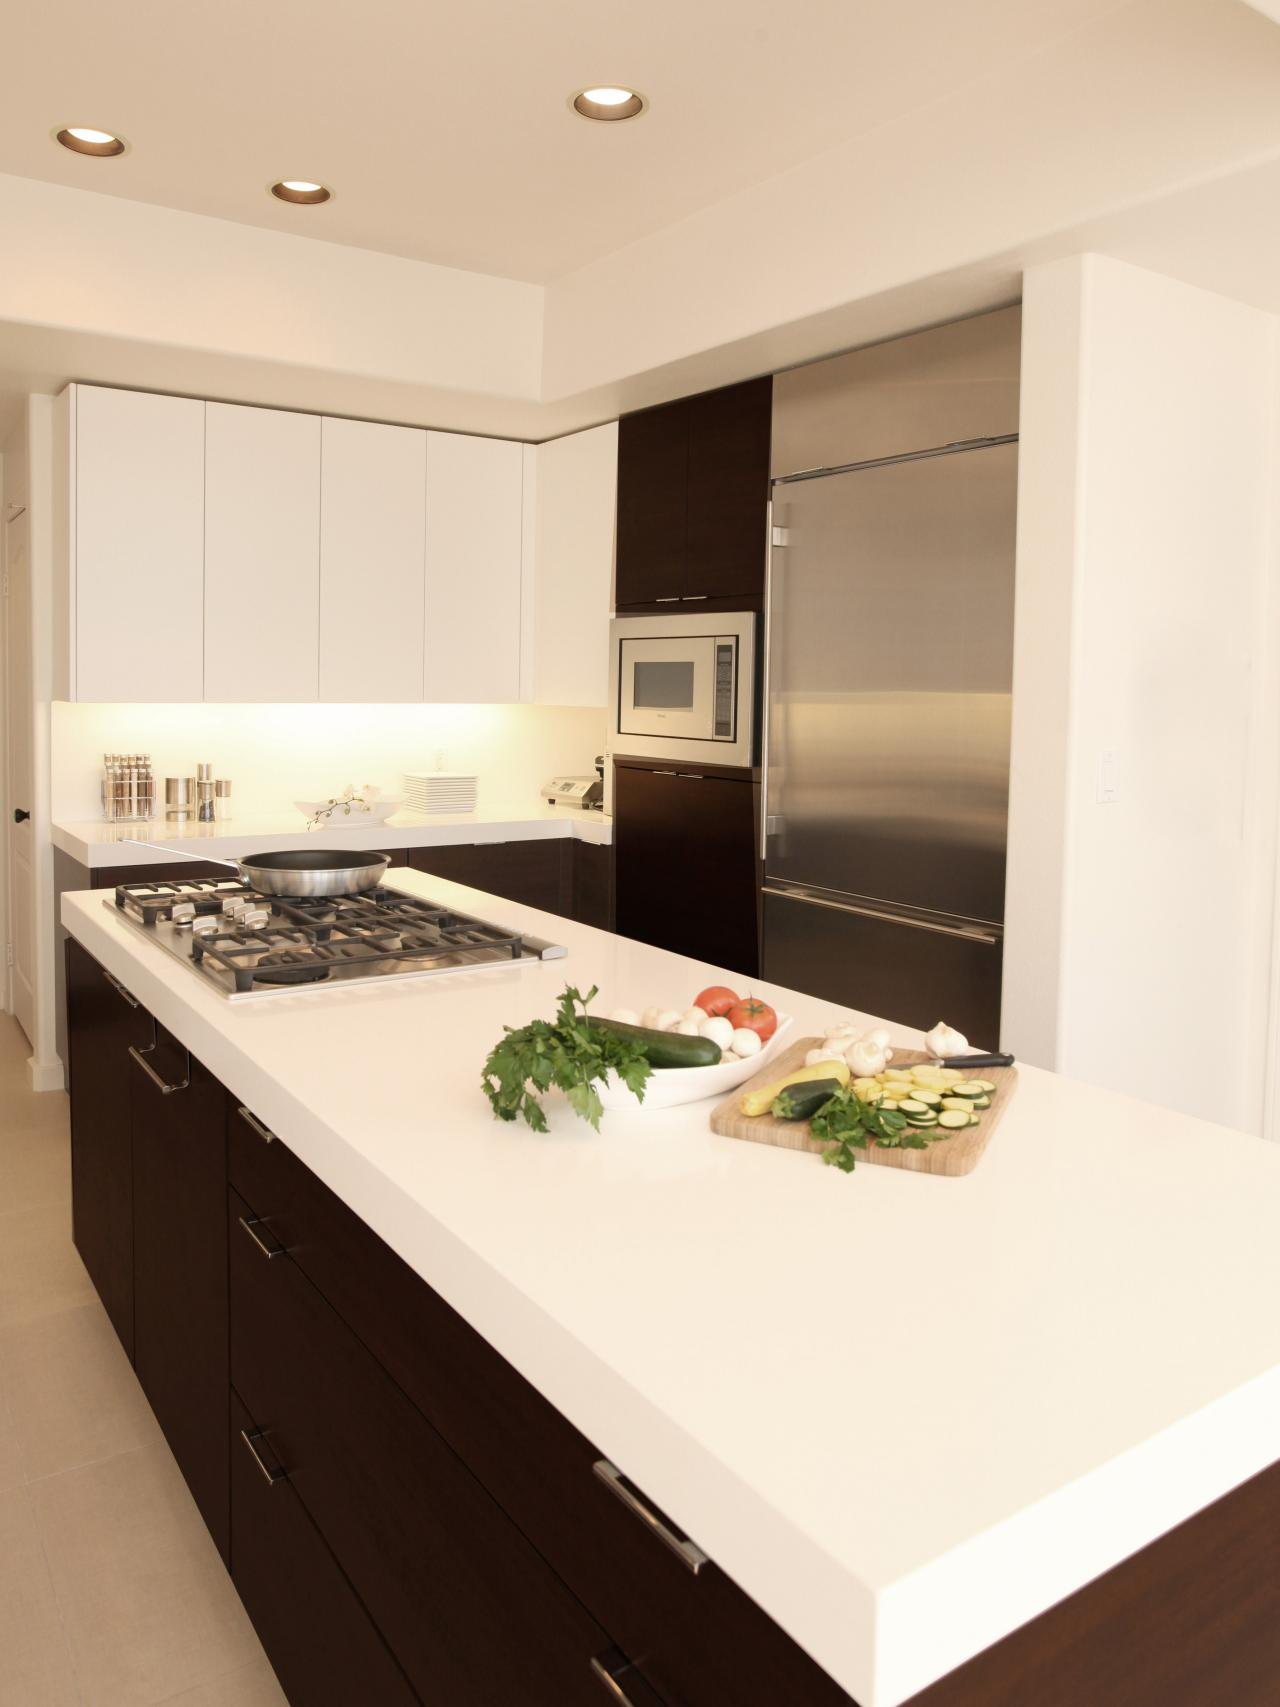 Modern Kitchen Counter cheap kitchen countertops pictures options ideas hgtv Solid Surface Kitchen Countertop Inspiration